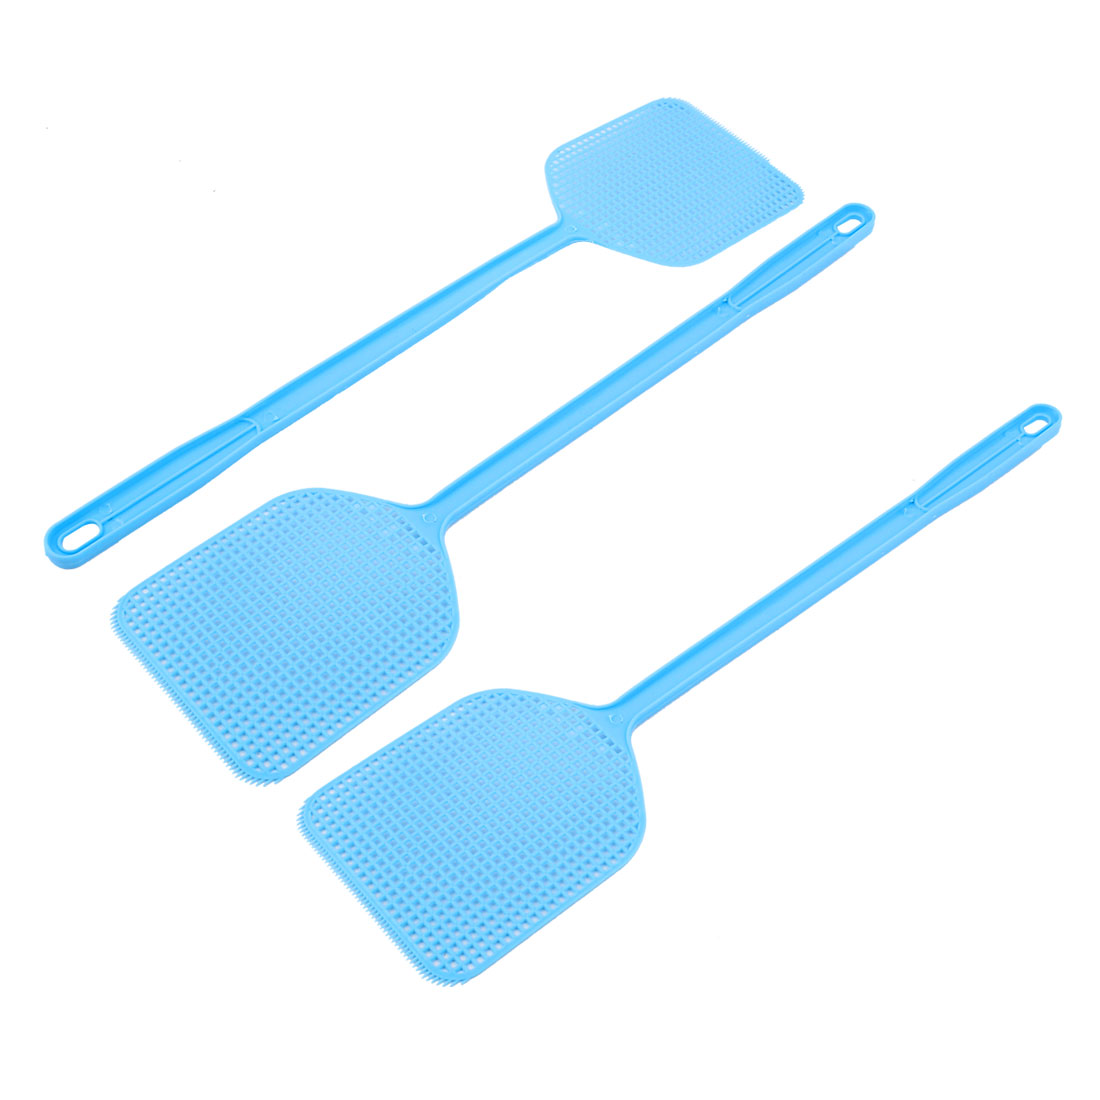 3pcs Blue Plastic Fly Swatter Bug Mosquito Insect Killer Catcher 45cm Length